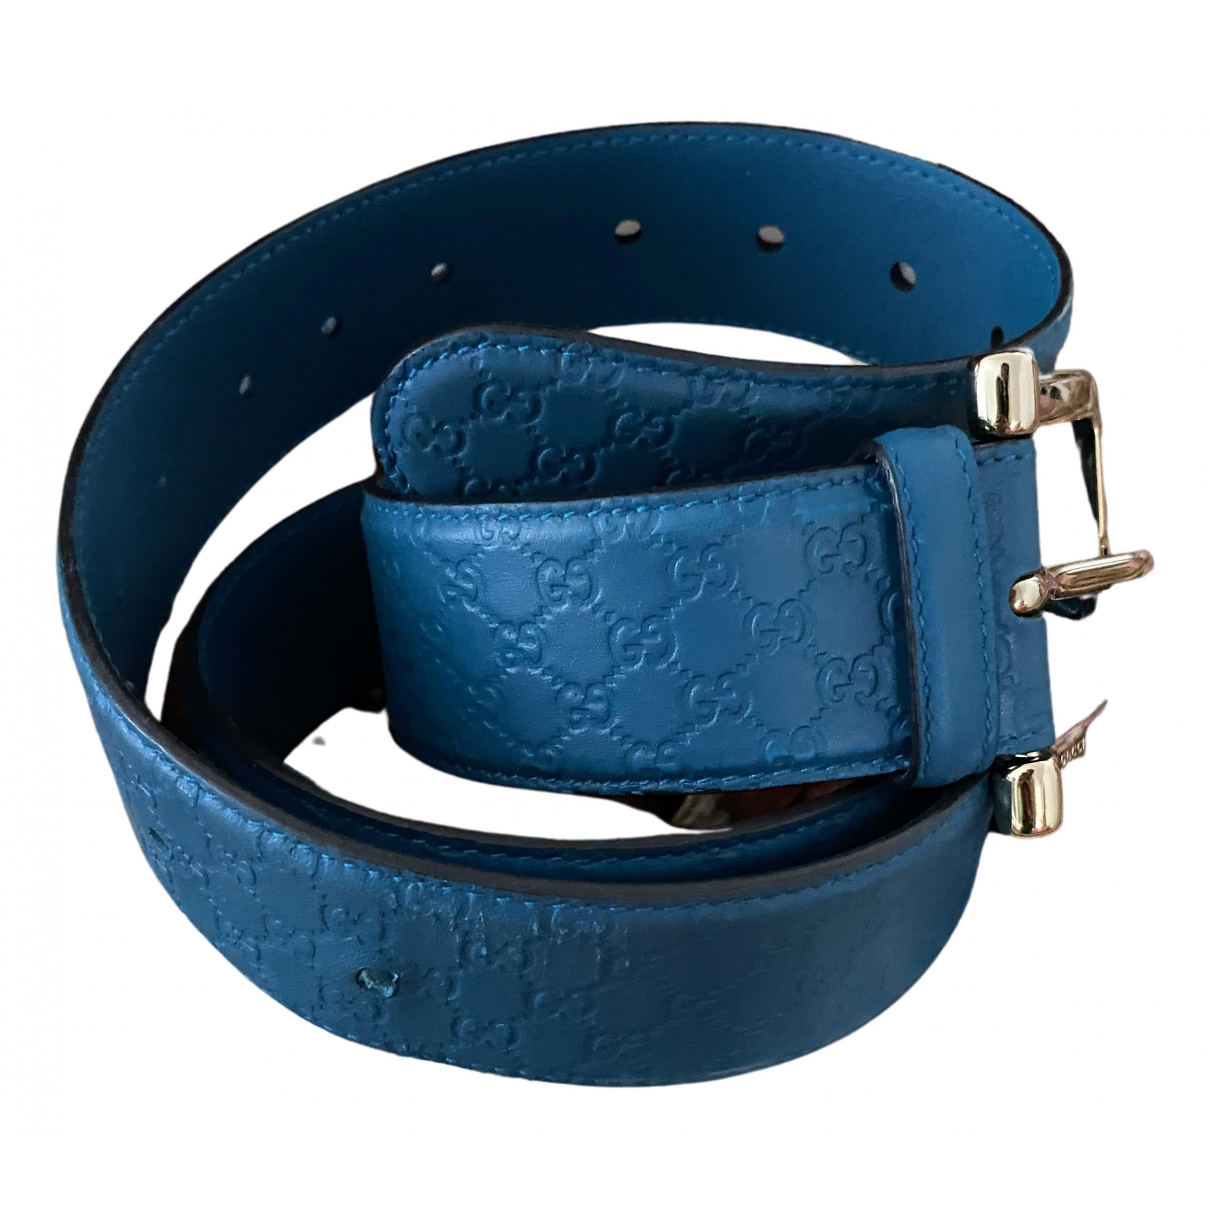 Gucci N Turquoise Leather belt for Women 95 cm